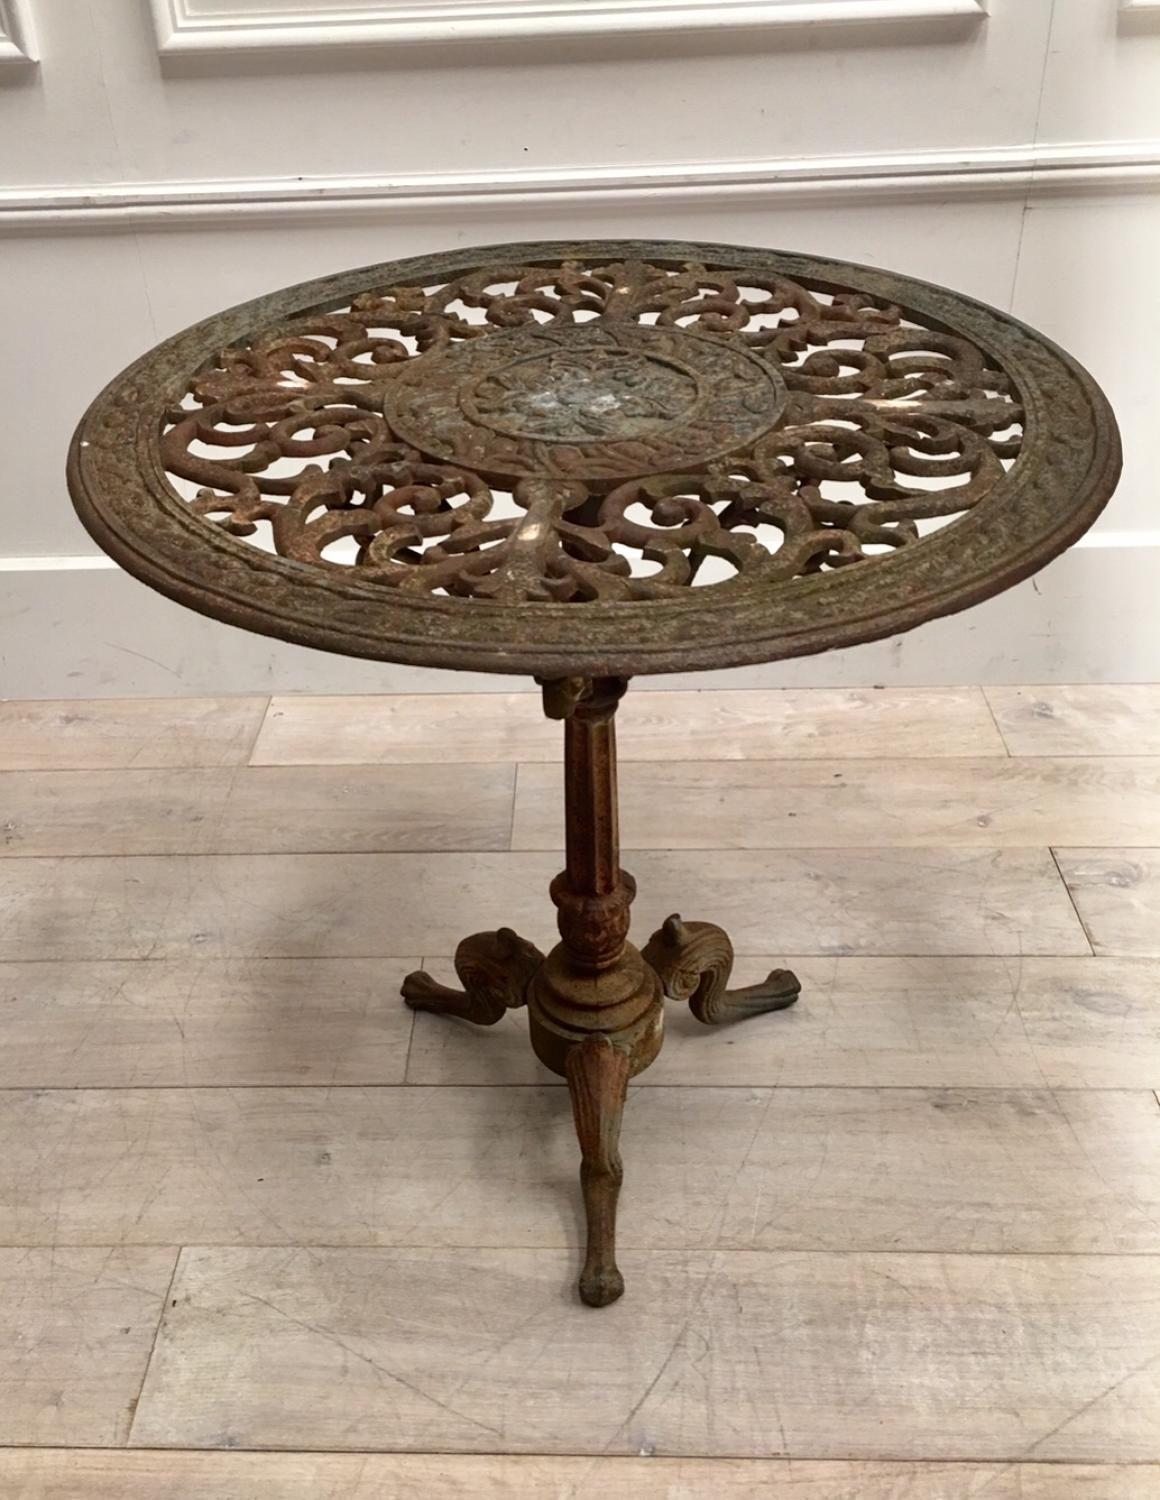 A circular cast iron garden table